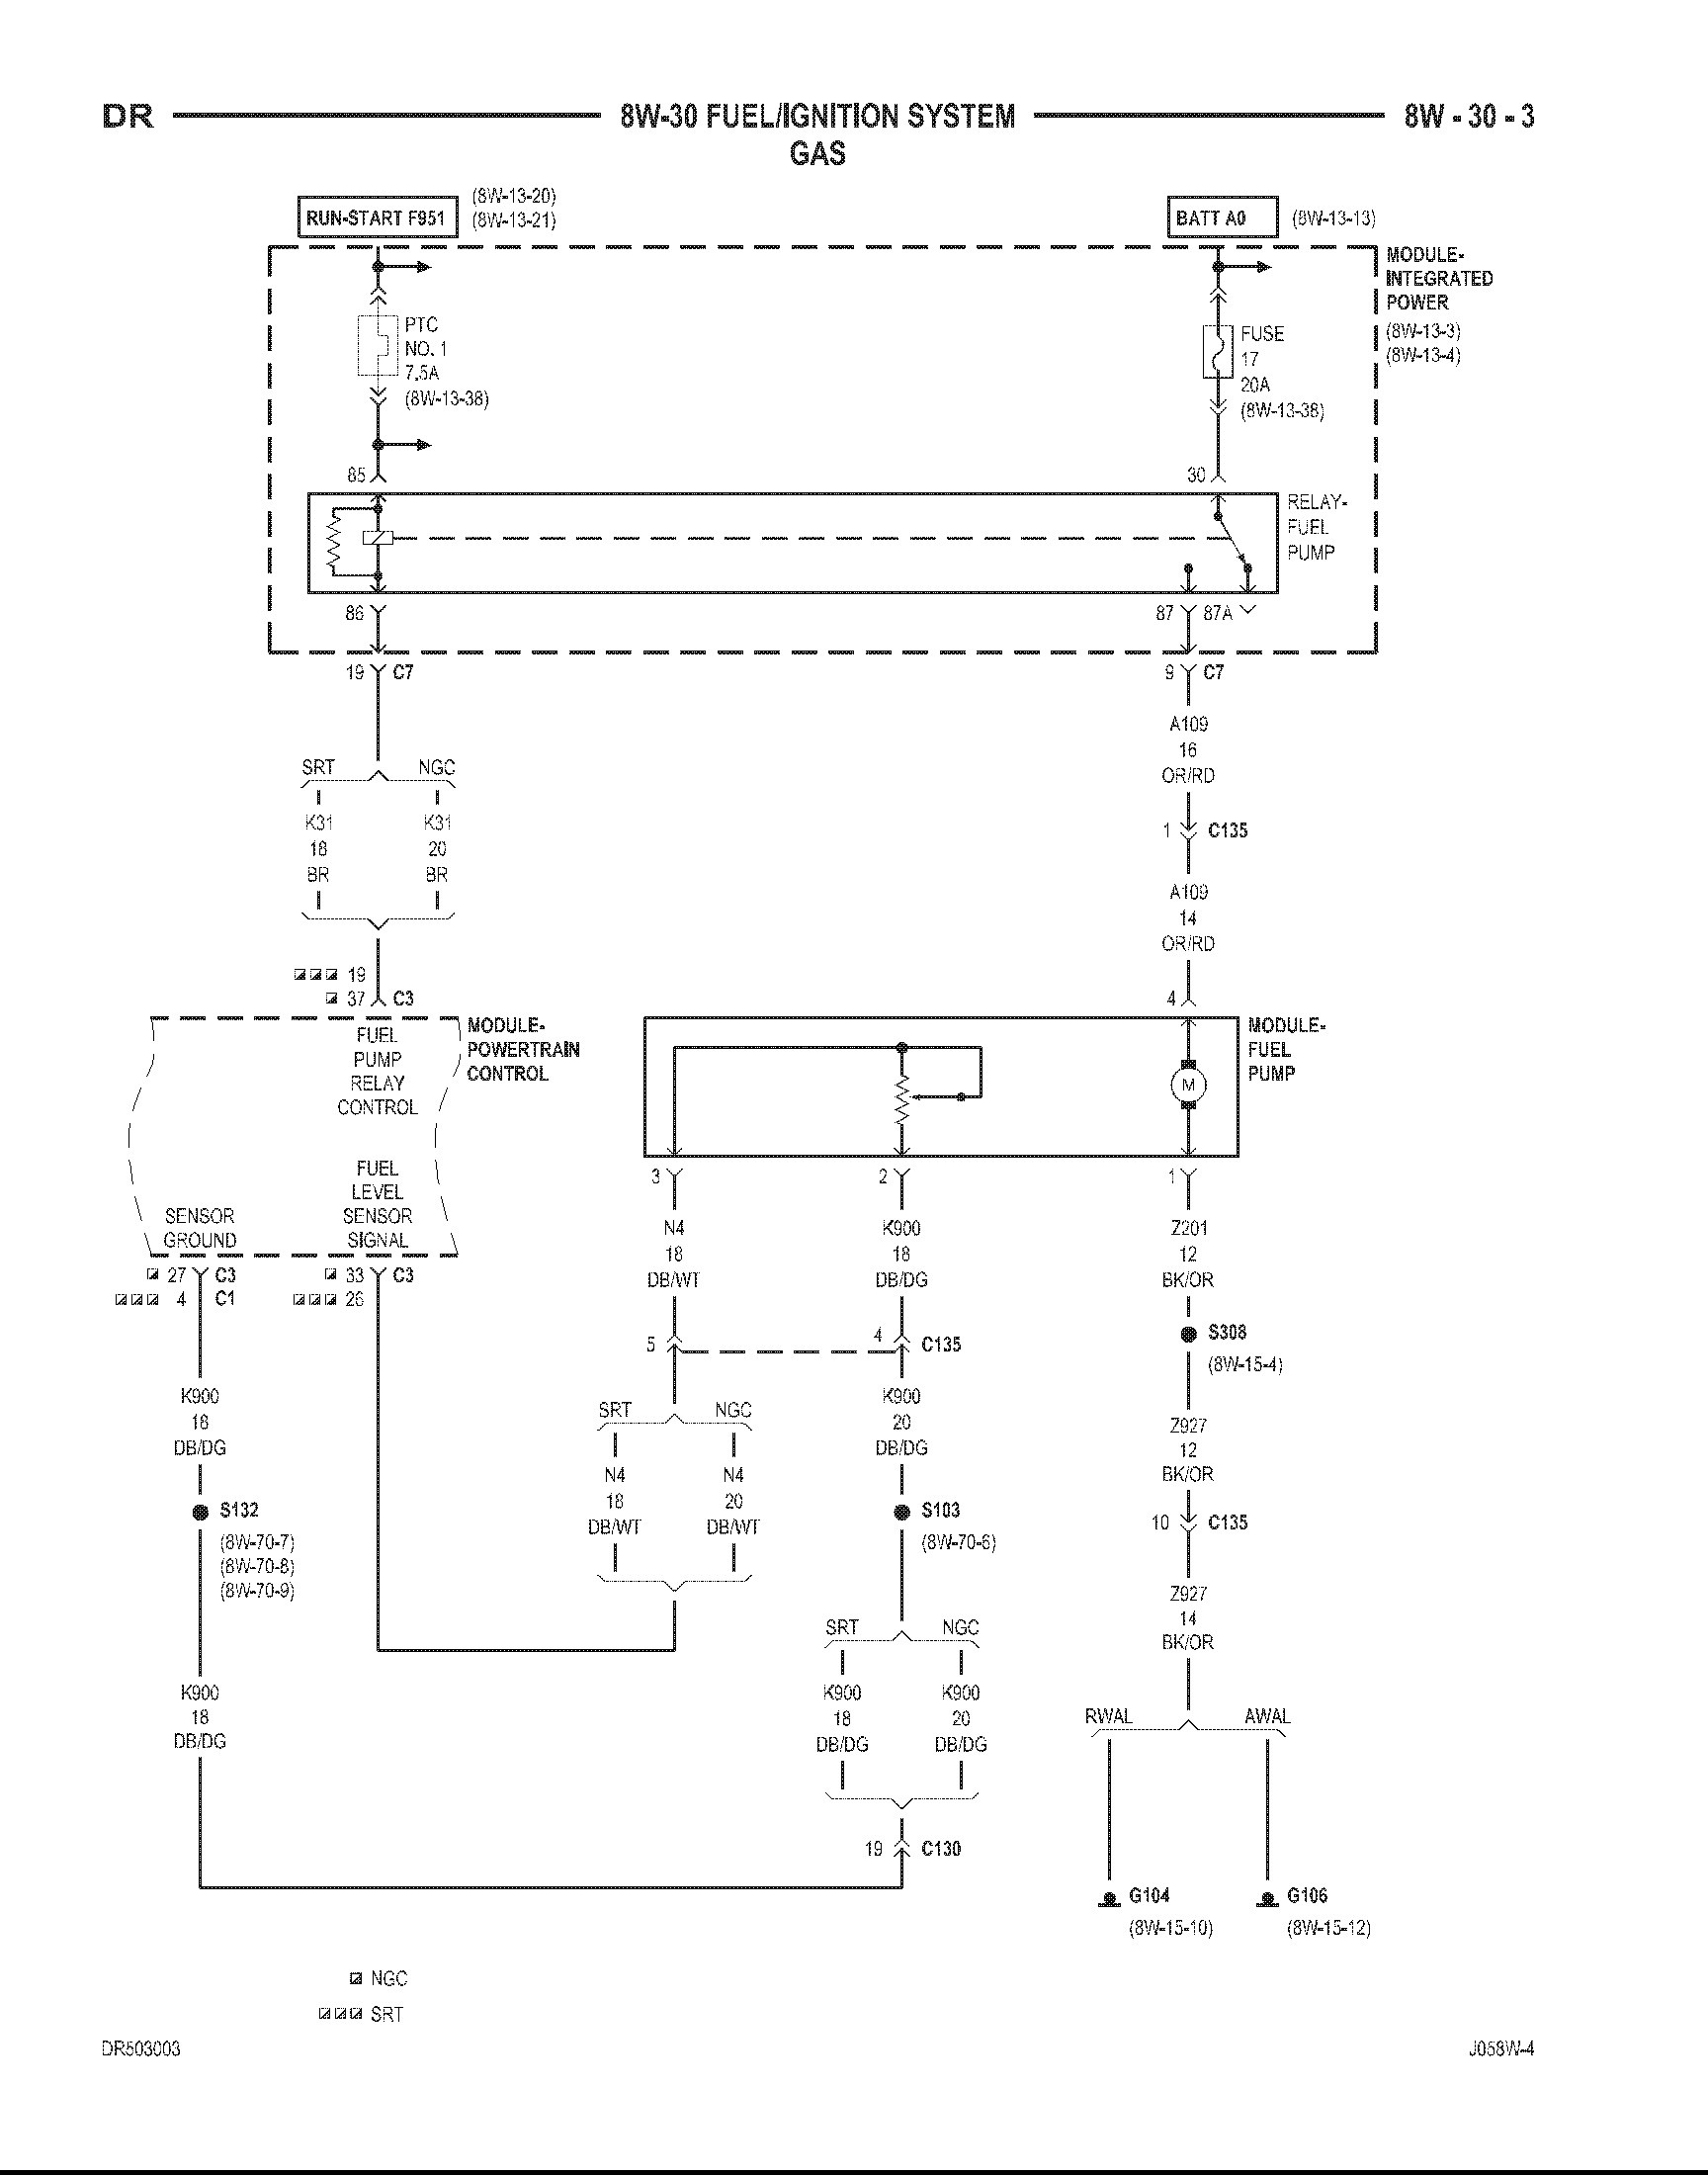 Ijnition Wiring Diagram for 2007 Dodge Ramtruck Dodge Ram Fuel Pump Wiring Diagram Wiring Diagram Data Of Ijnition Wiring Diagram for 2007 Dodge Ramtruck